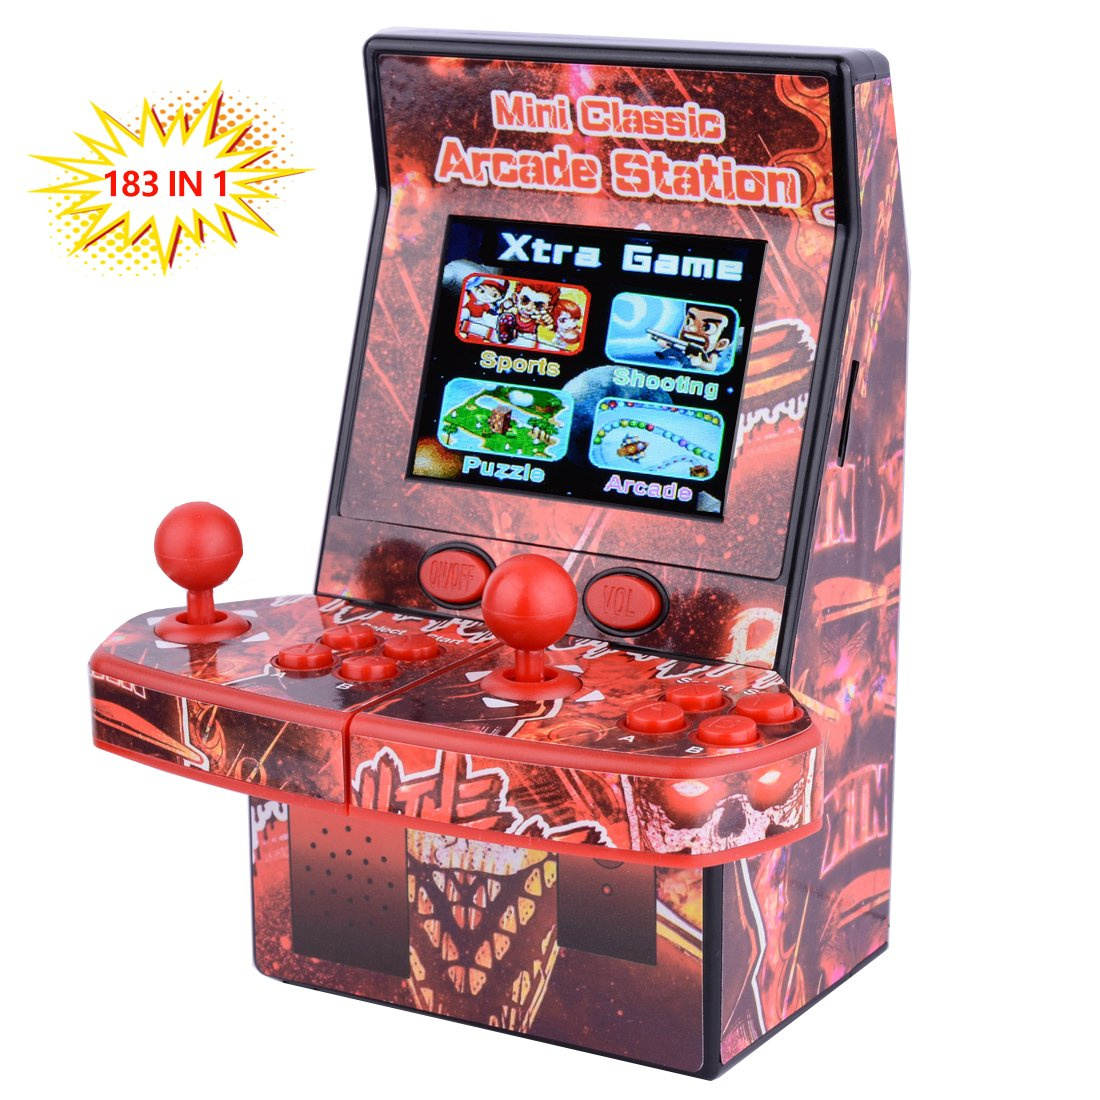 ZHISHAN Mini Arcade Portable Handheld Game Console Gaming Player Birthday Gift for Kids Built in 183 Classic Retro Double Play Games with 2.8'' LCD Big Screen (Red